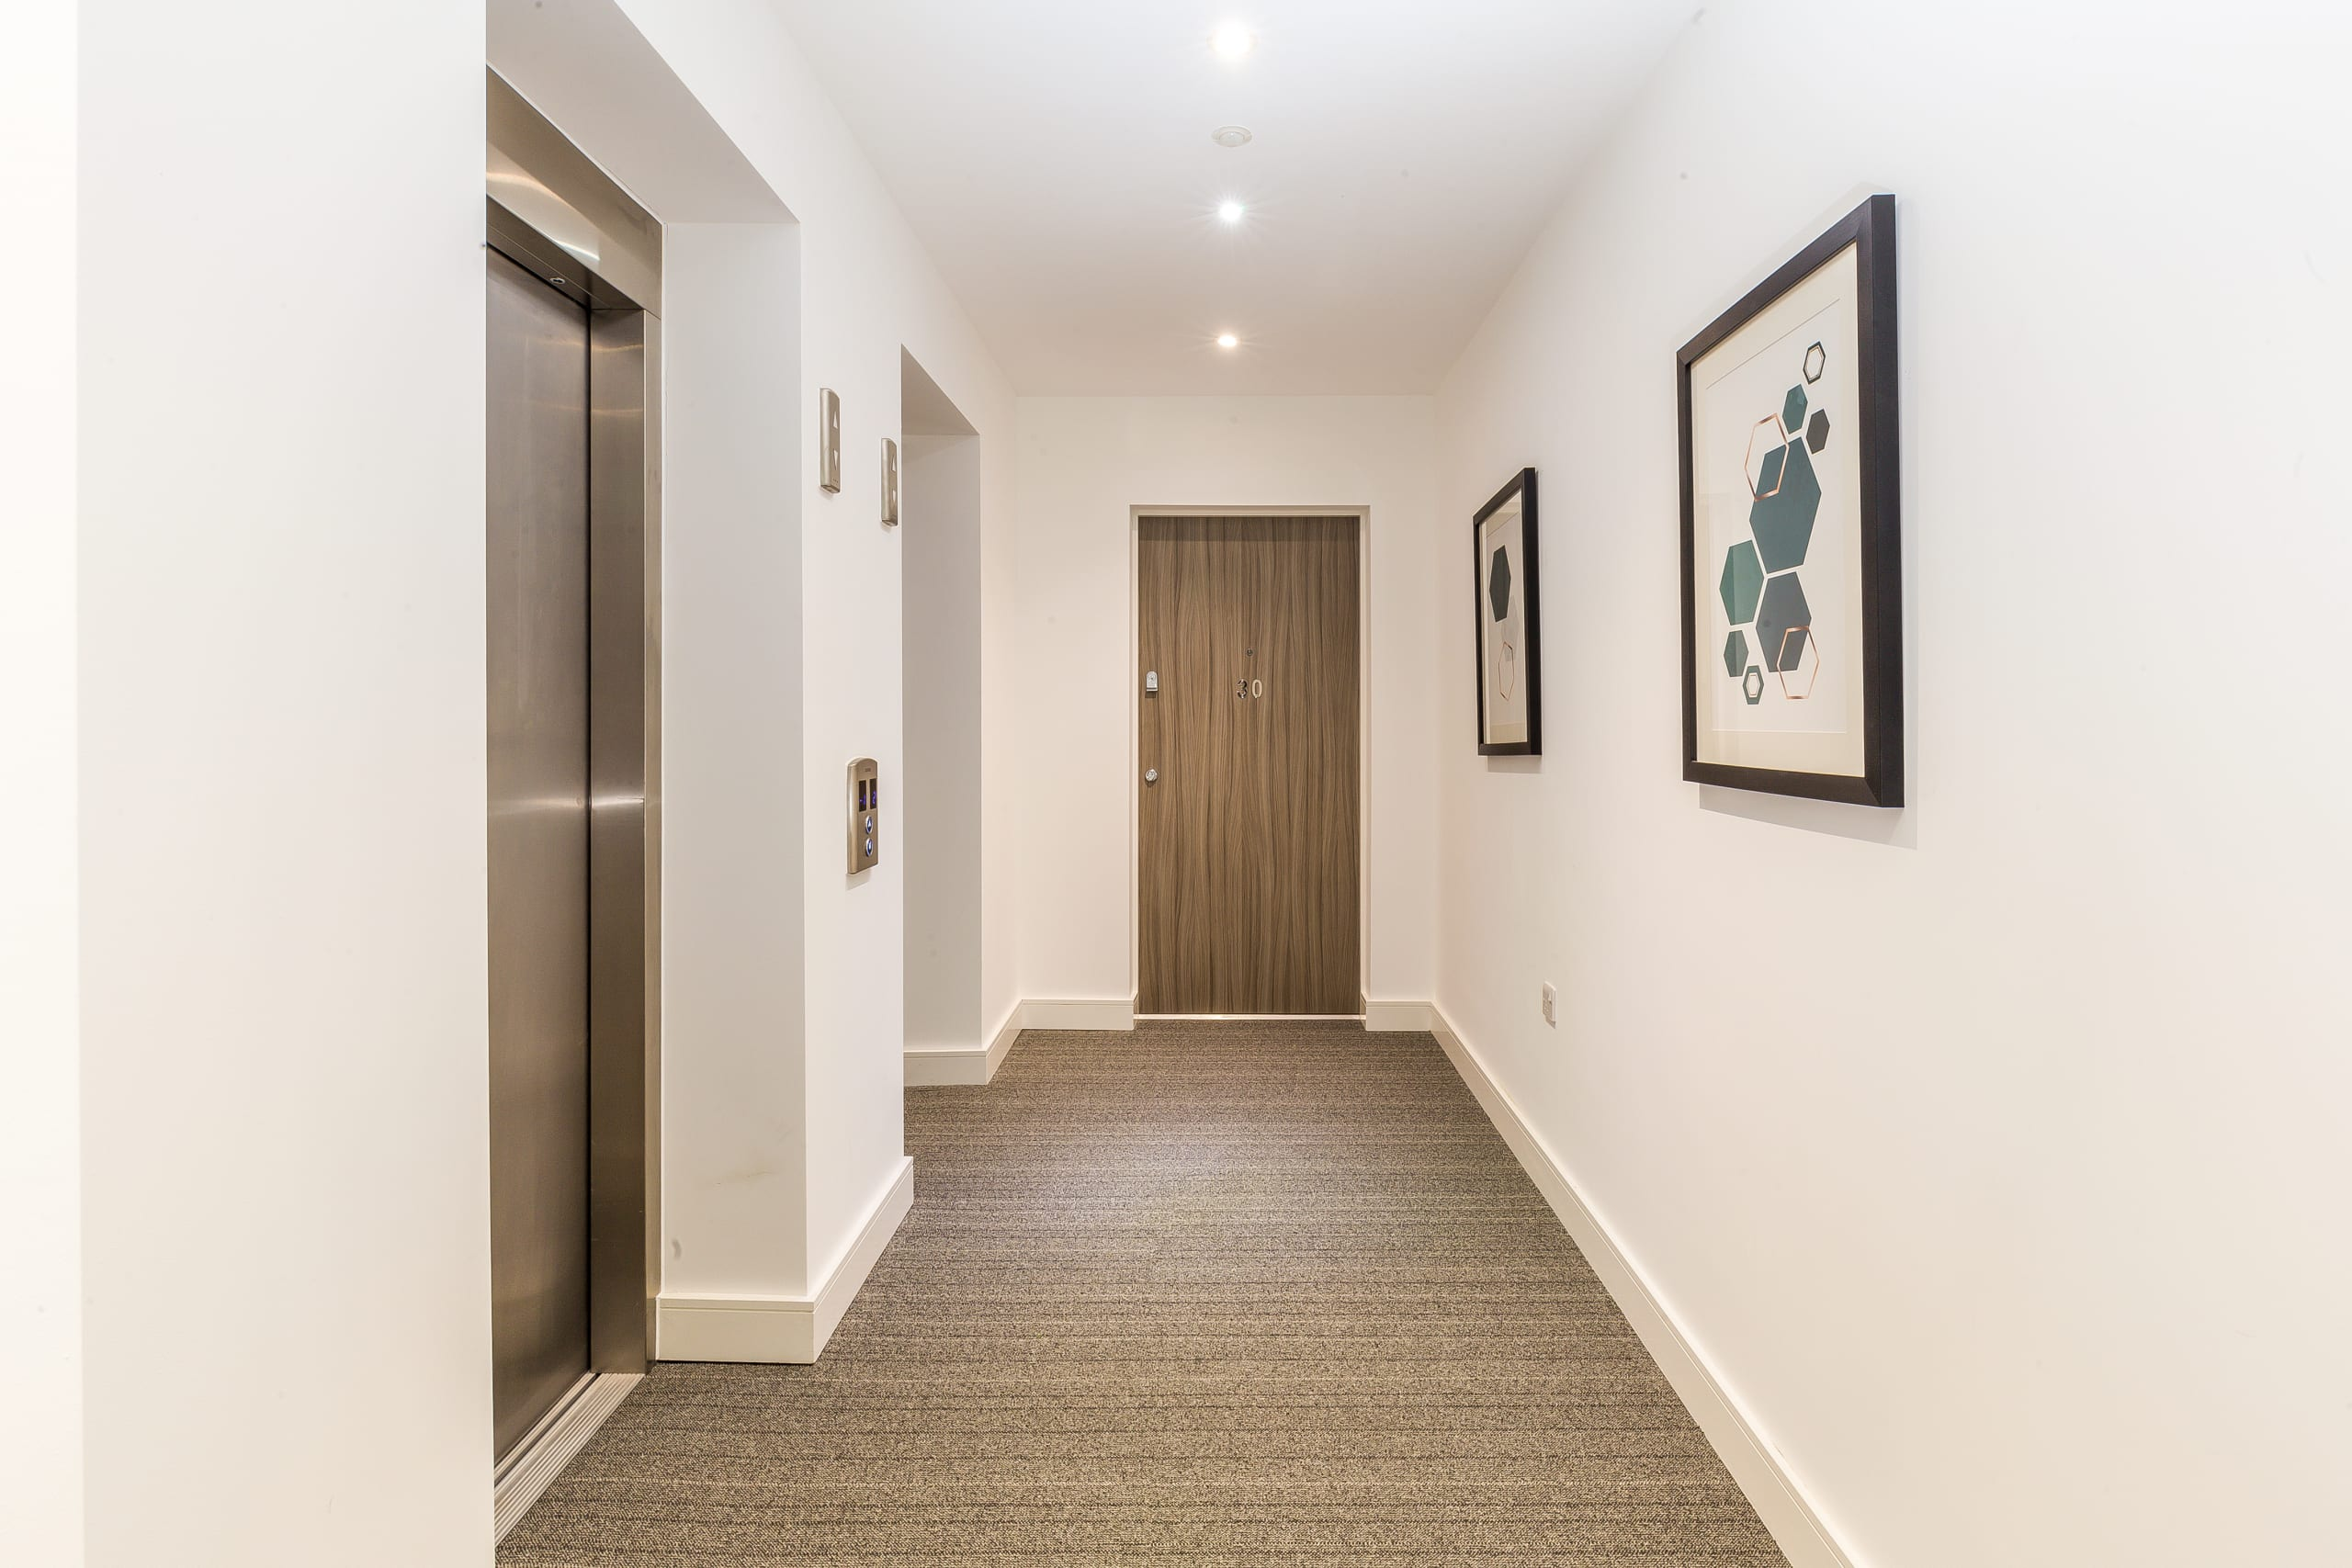 Apartment hallway with white walls and lift system , paintings on the walls